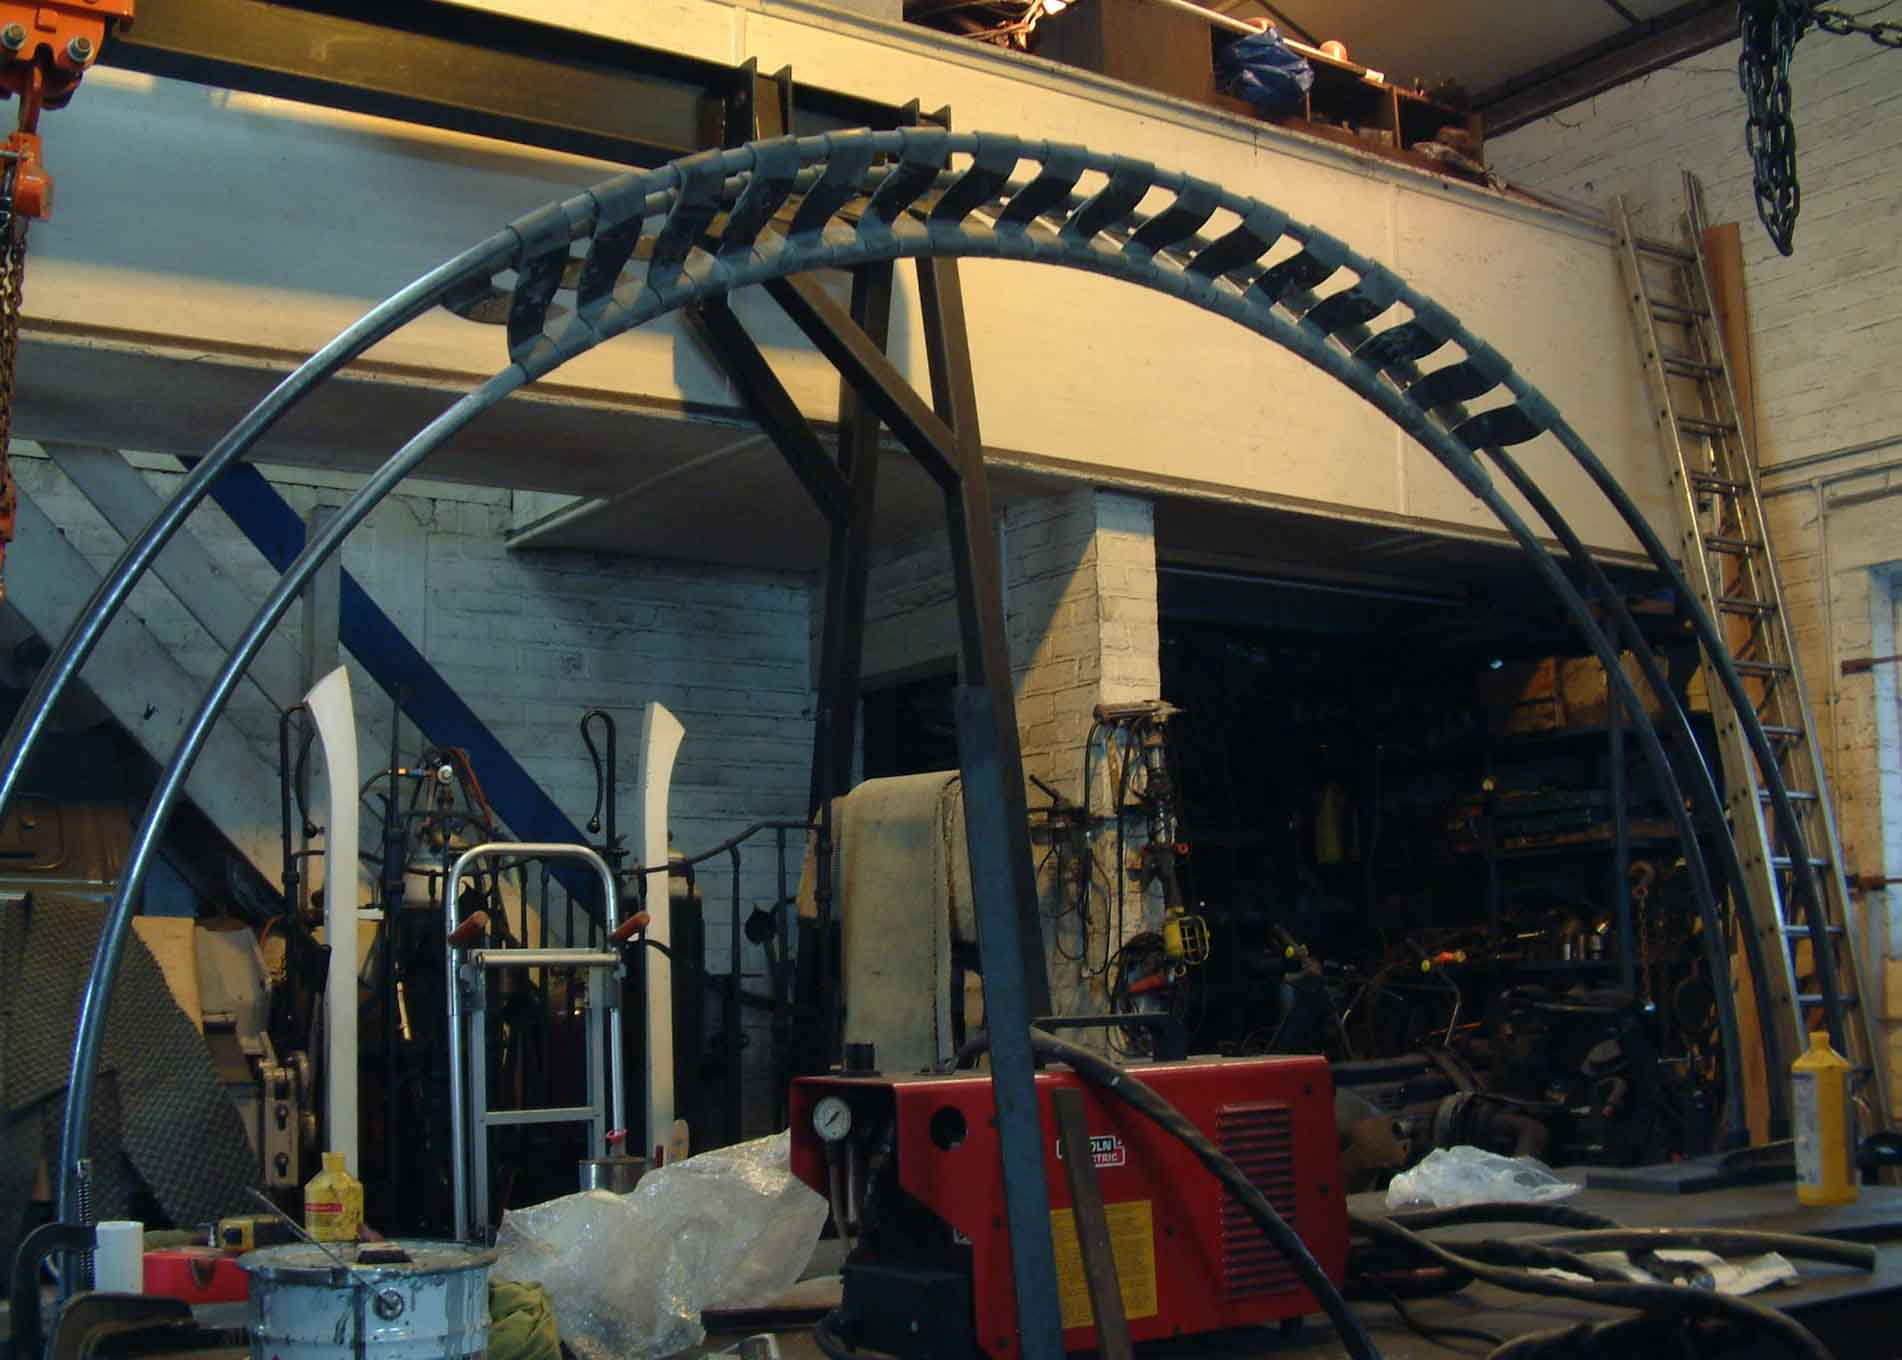 Wymeswold arch (under construction)